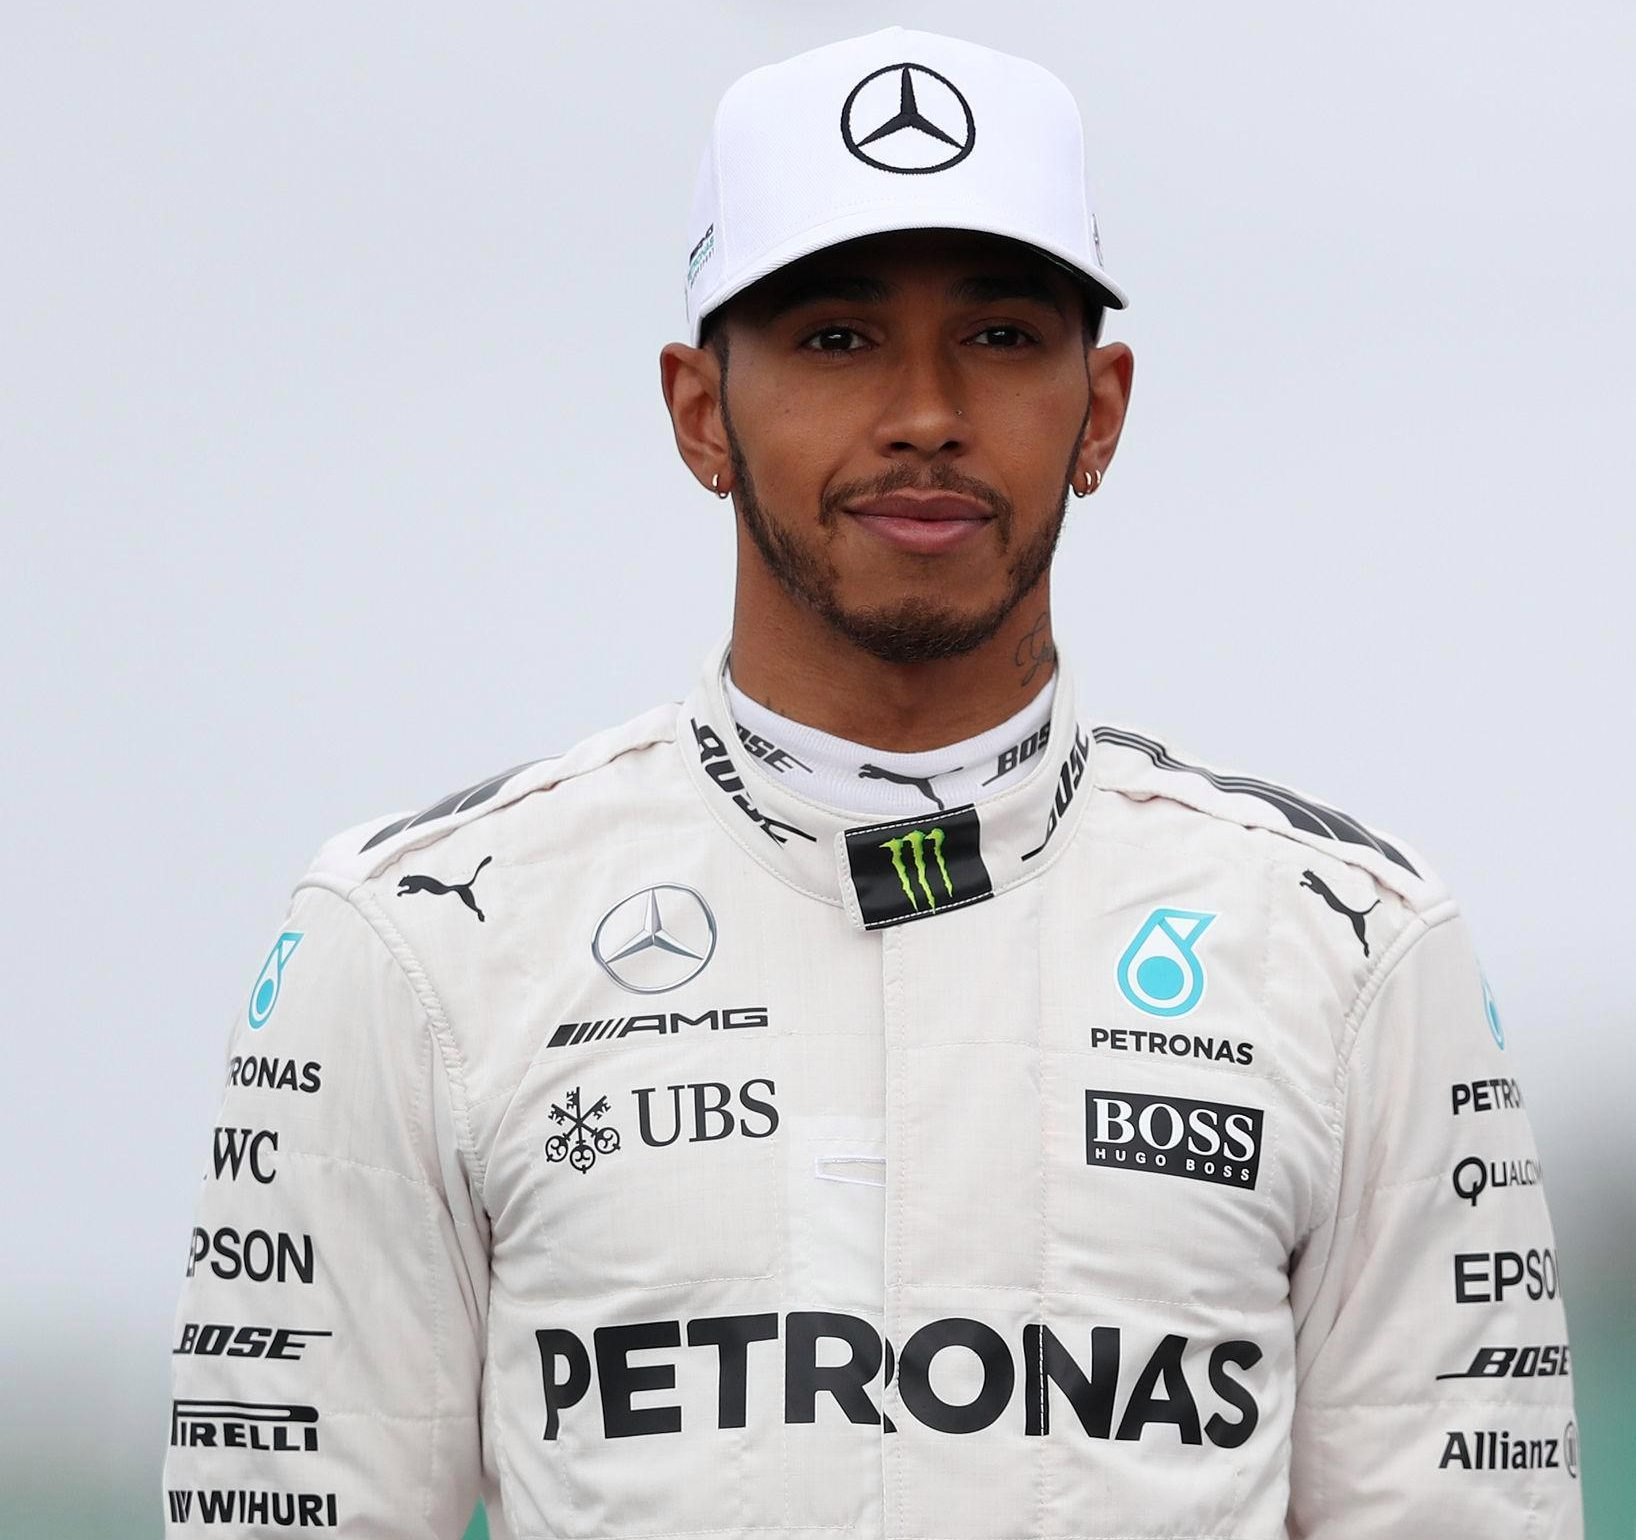 Lewis Hamilton is another British F1 star to back the young racer